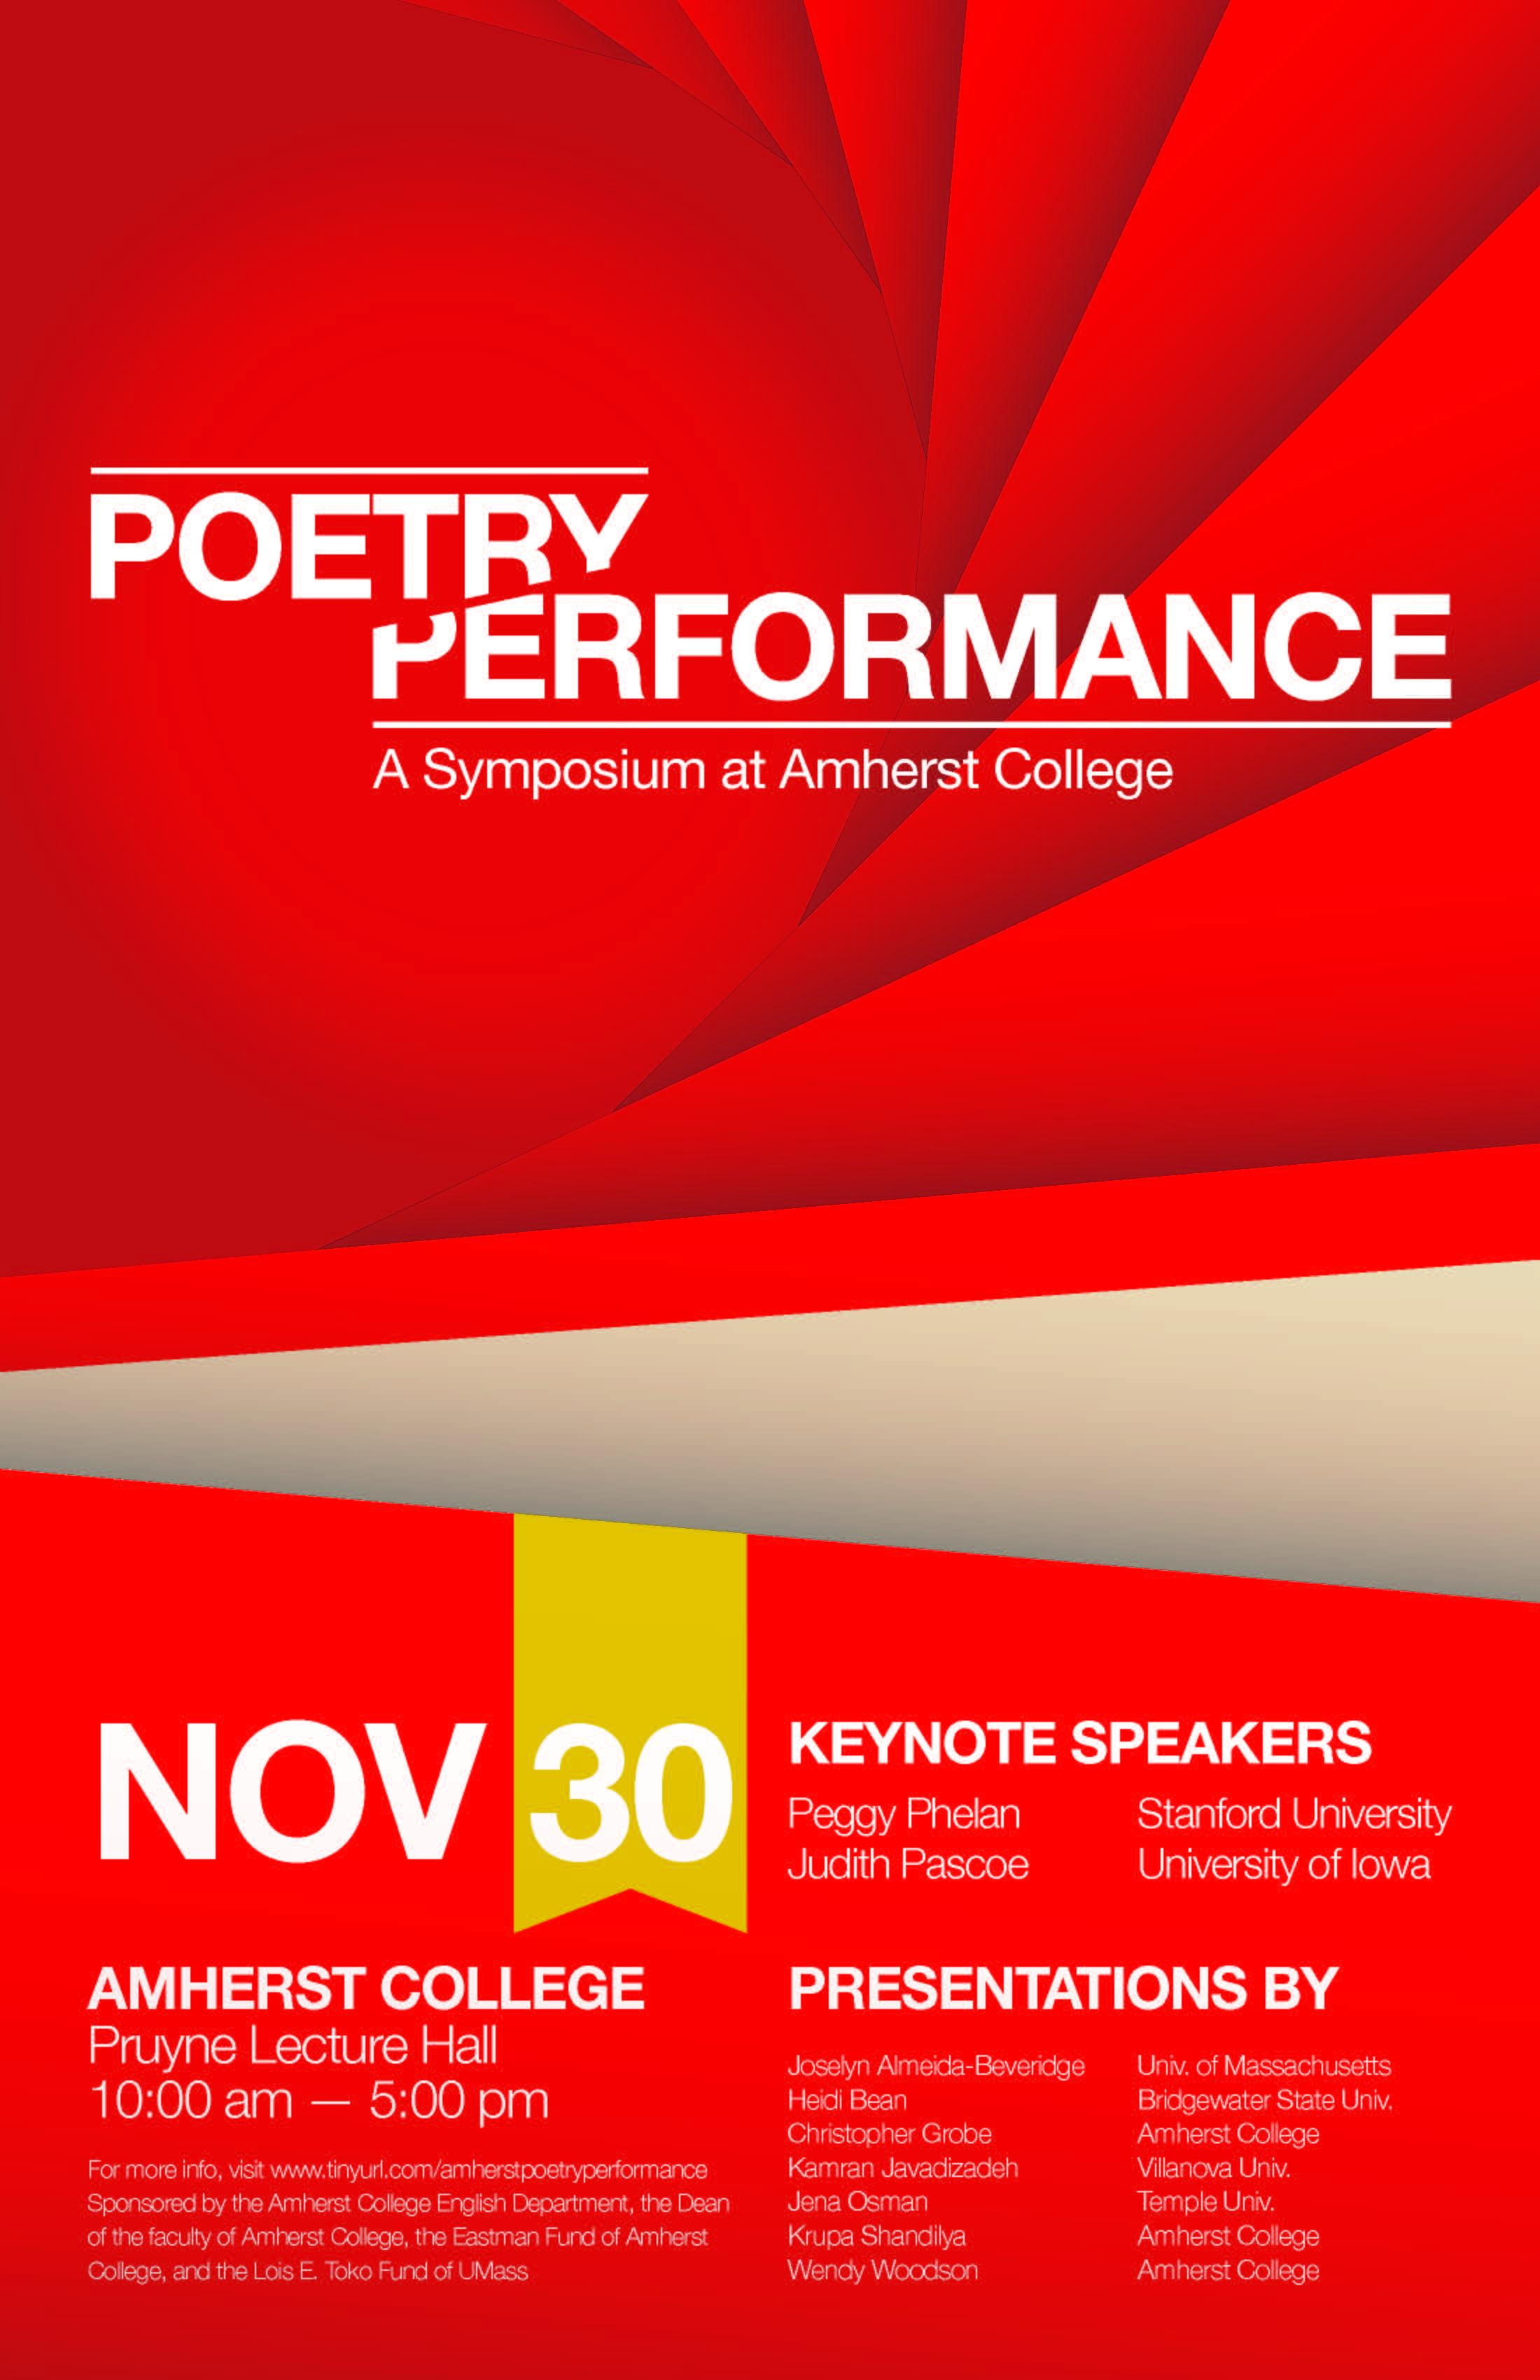 poetry performance poster